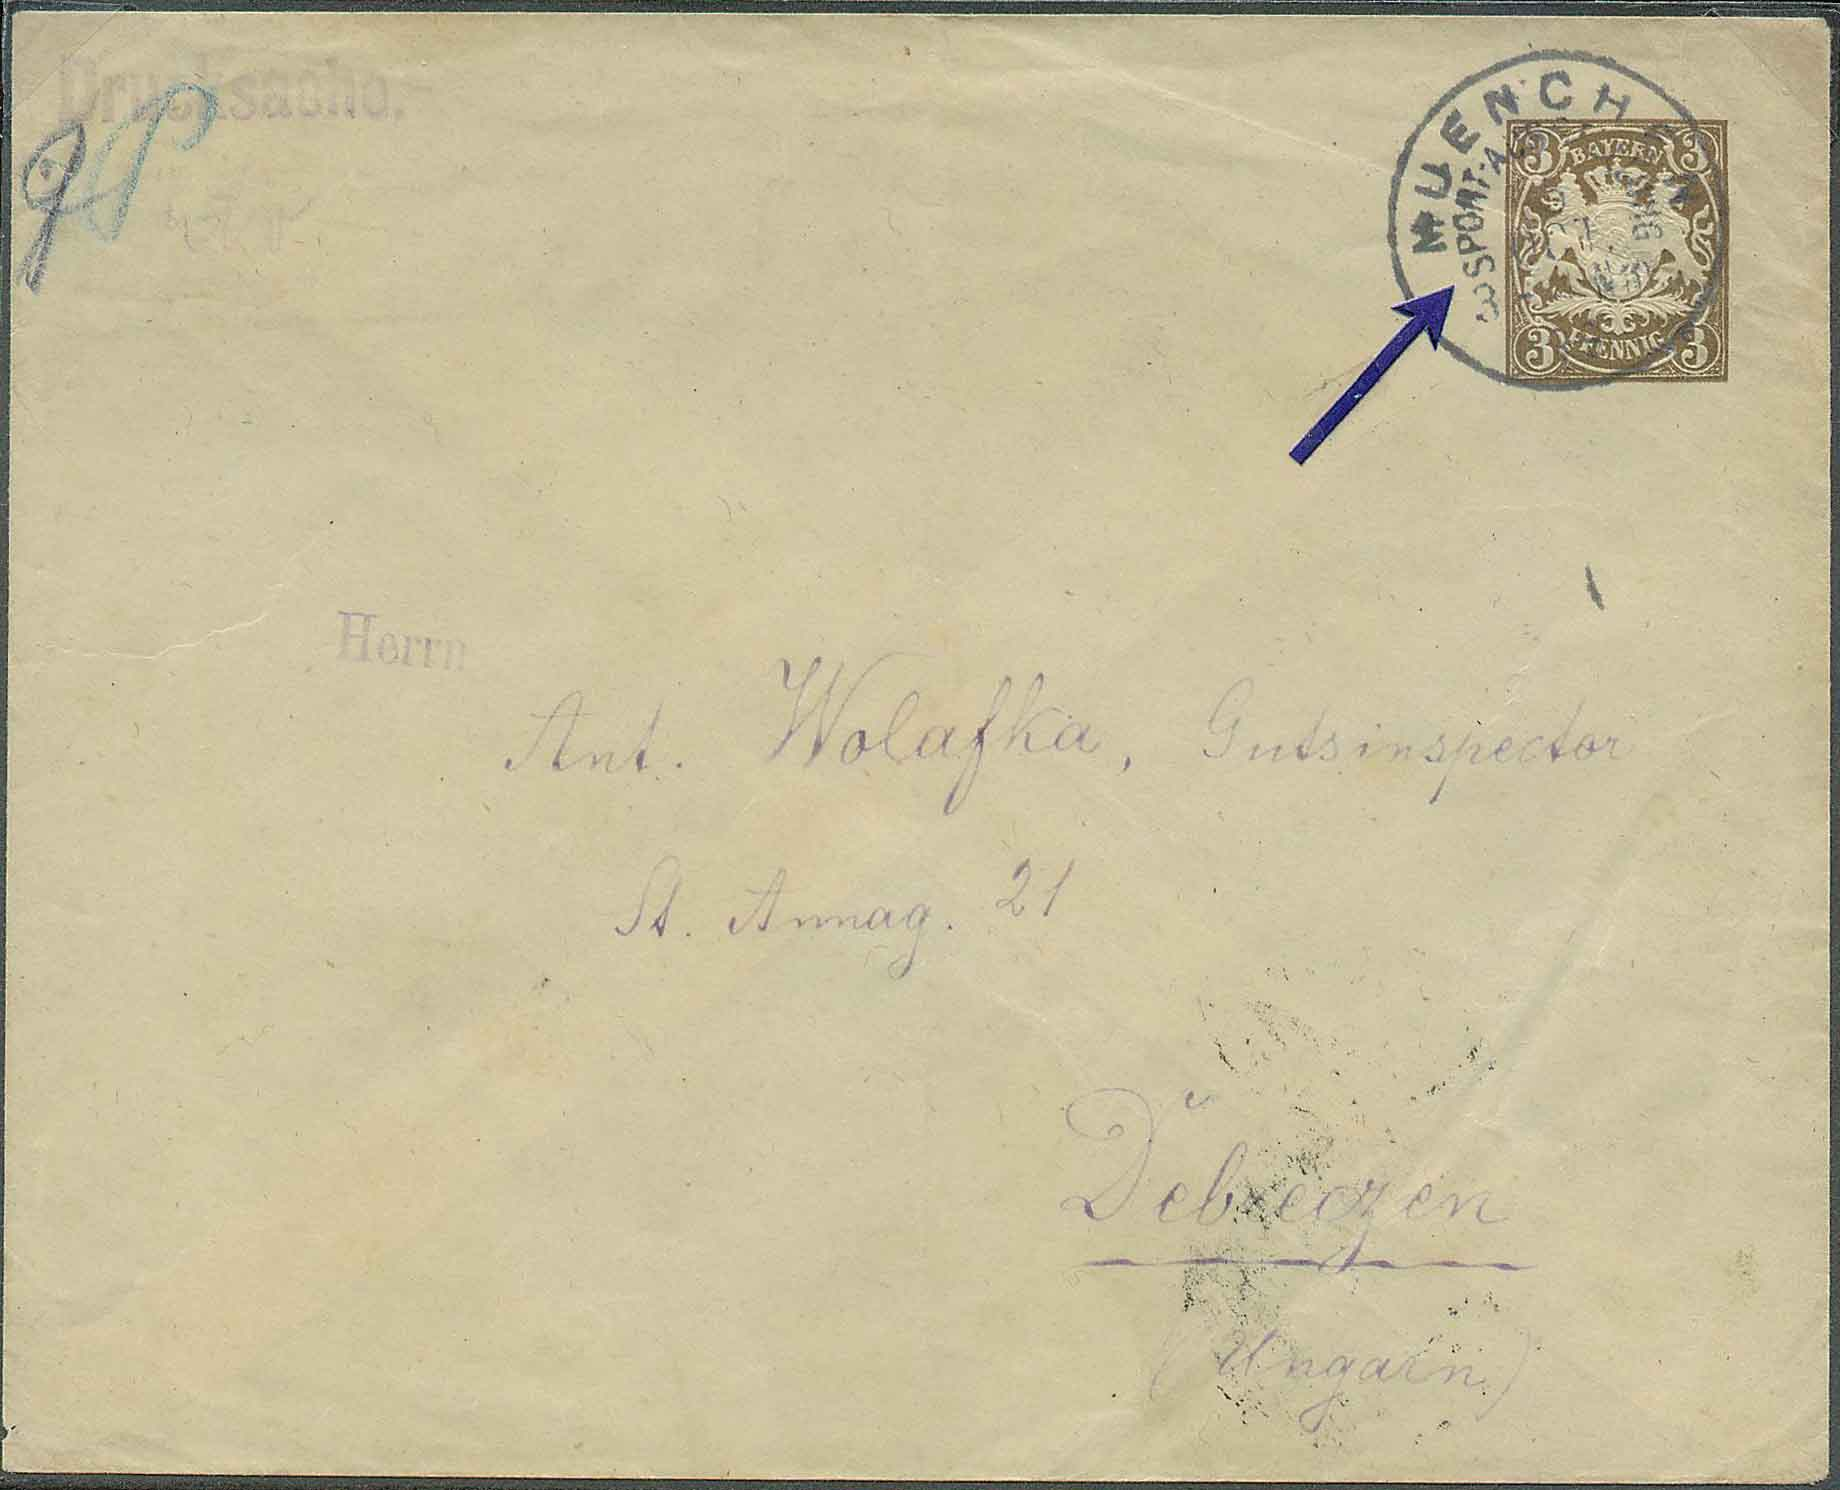 Postal Stationery with Sport Exhibition Cancellation